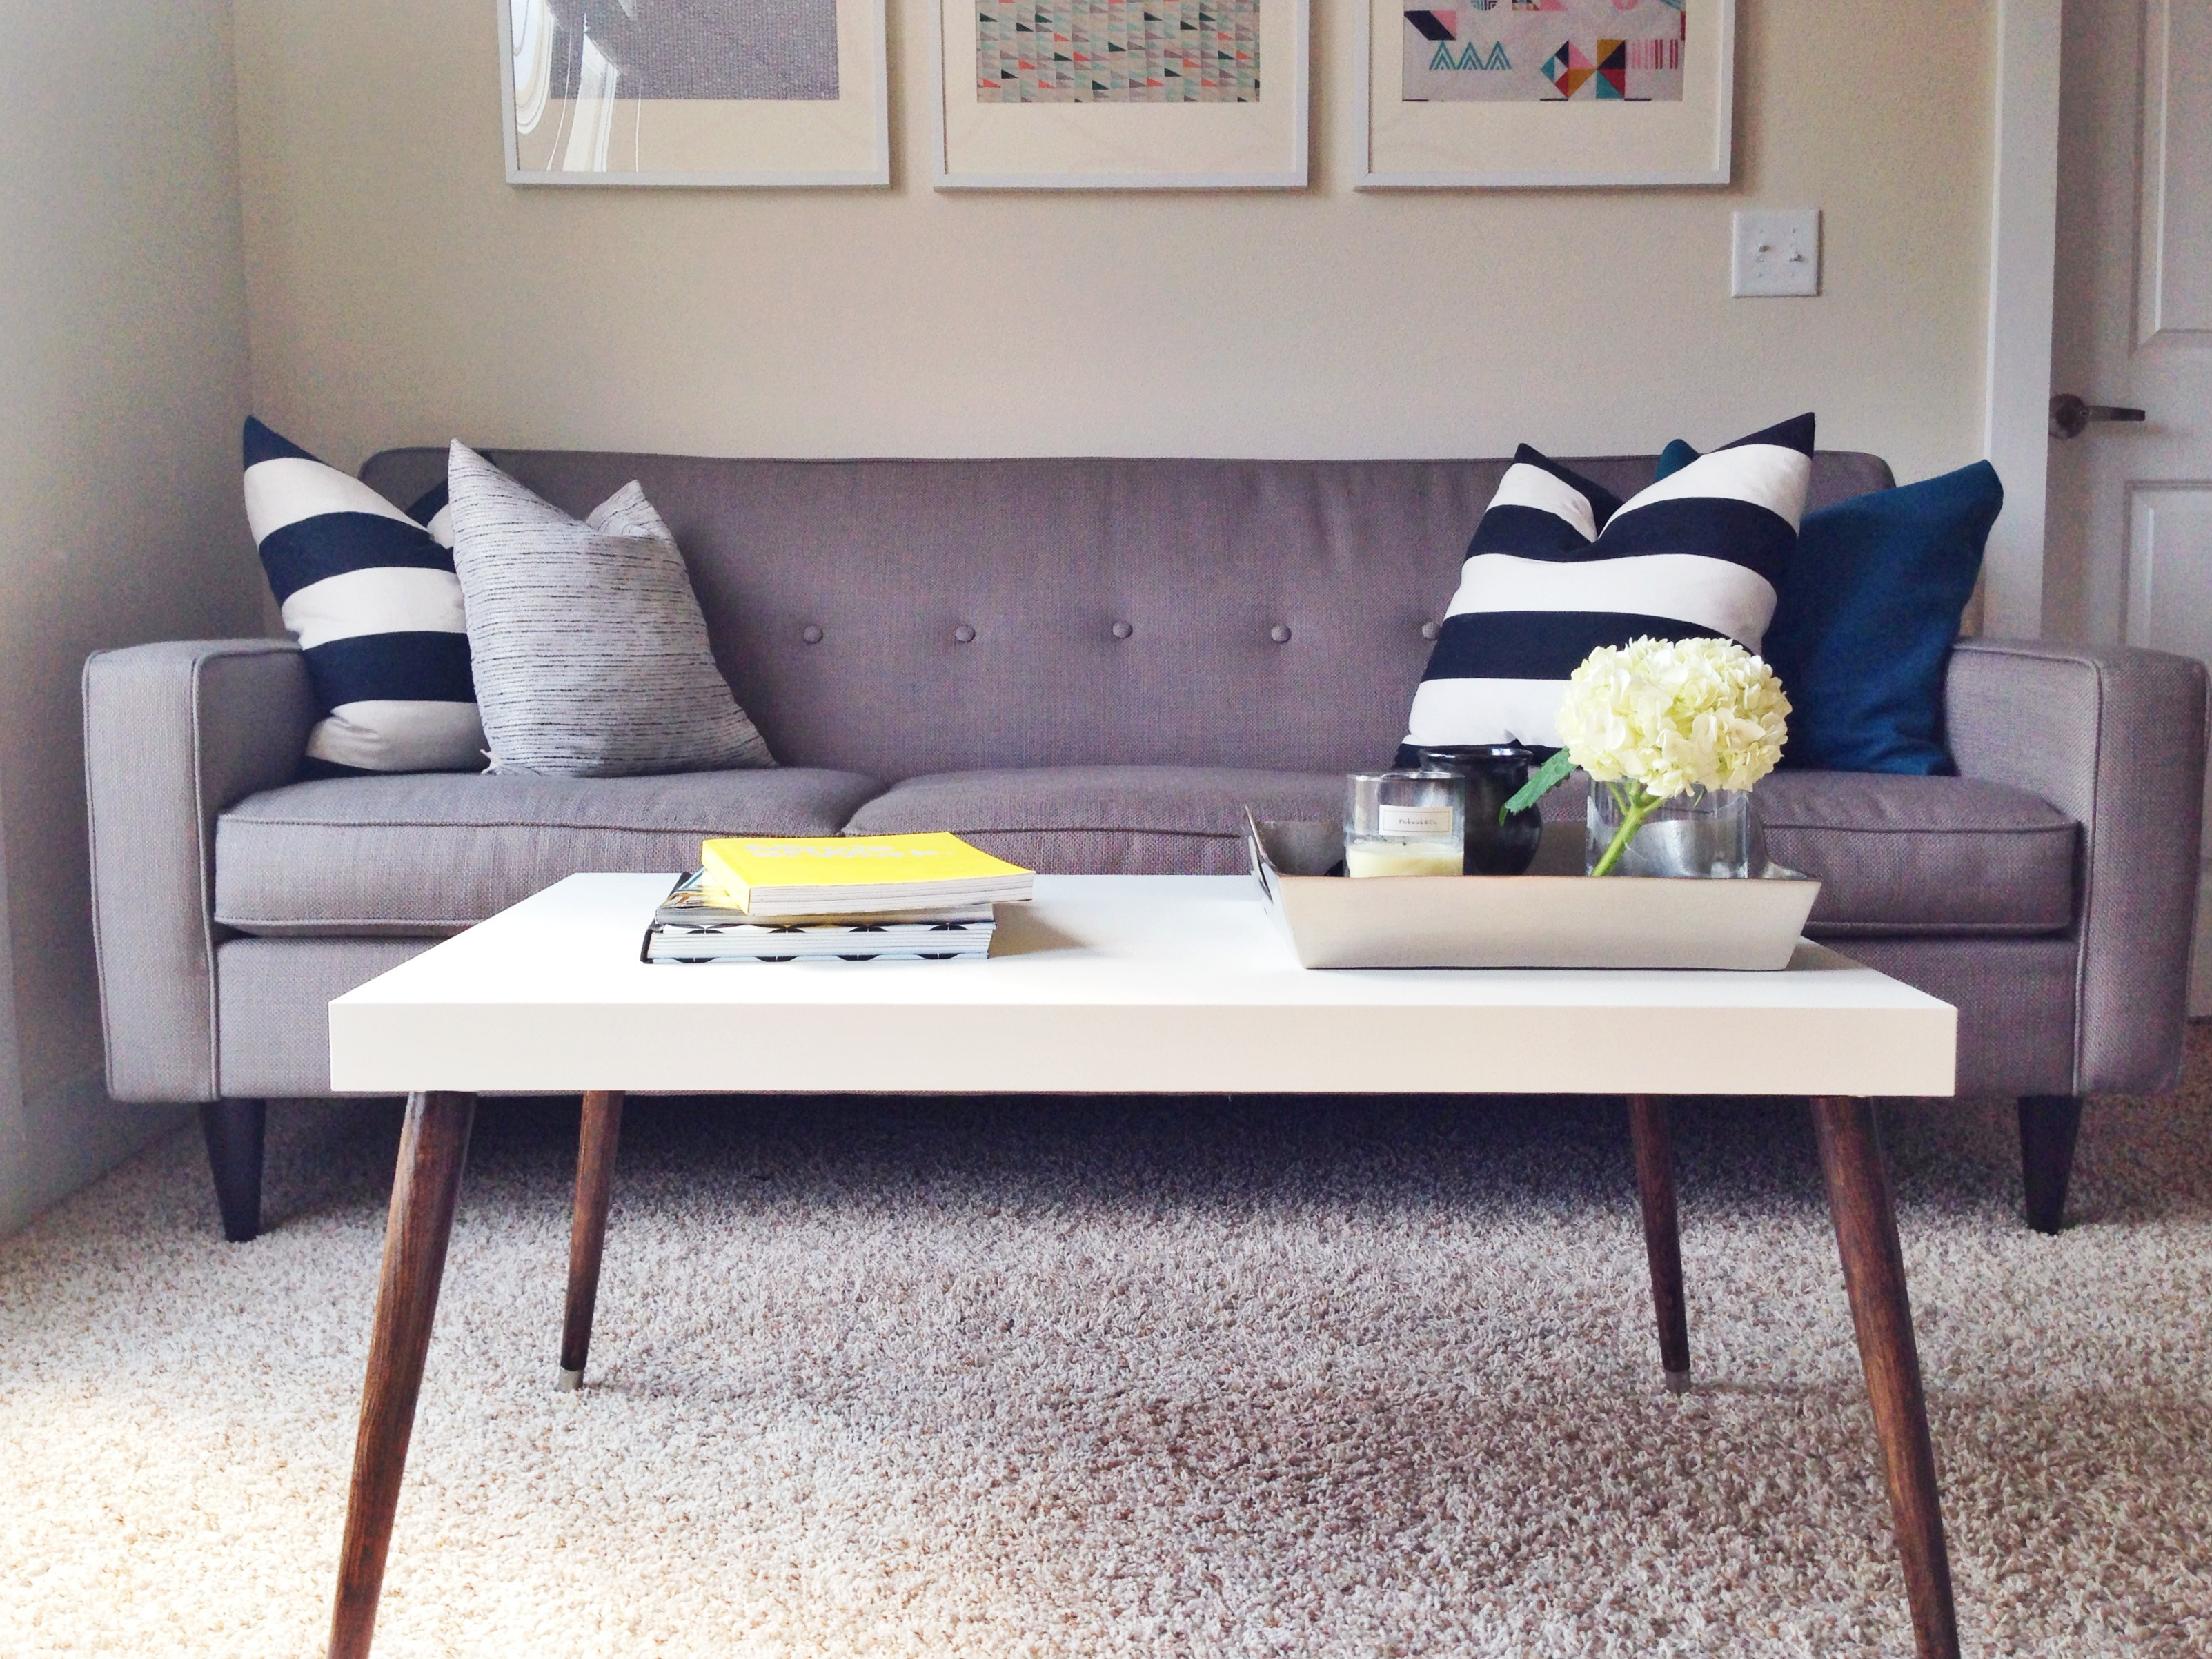 Ikea Sofa Round Rock Awesome Ikea Hack Of The Week A 60 Sleek Midcentury Coffee Table